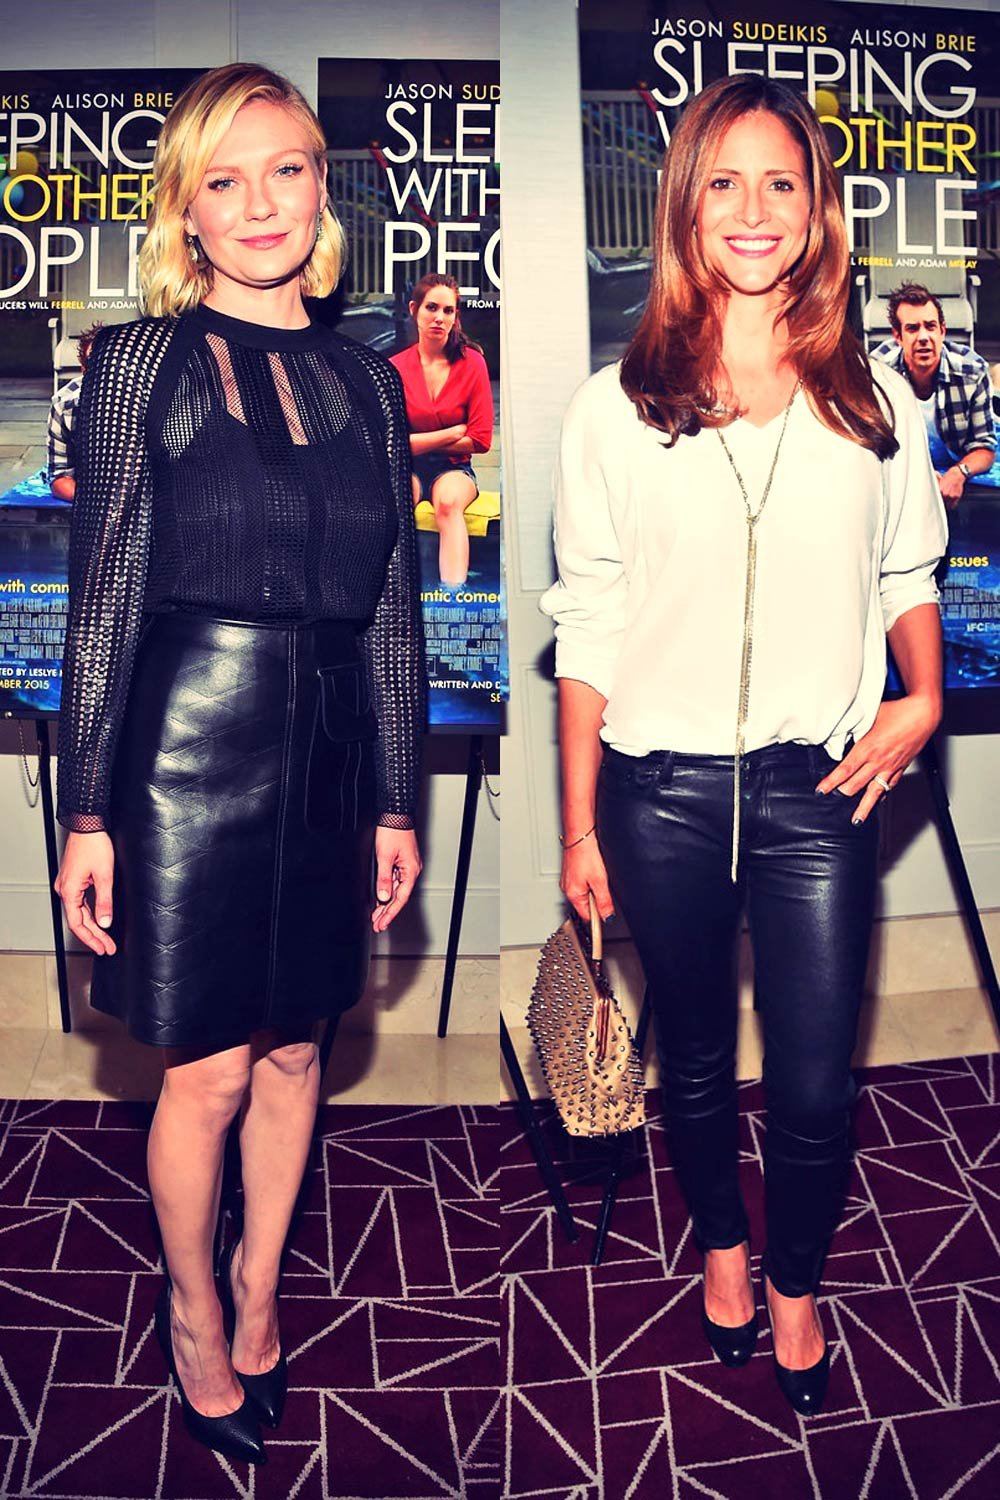 Kirsten Dunst & Andrea Savage attend Sleeping With Other People screening